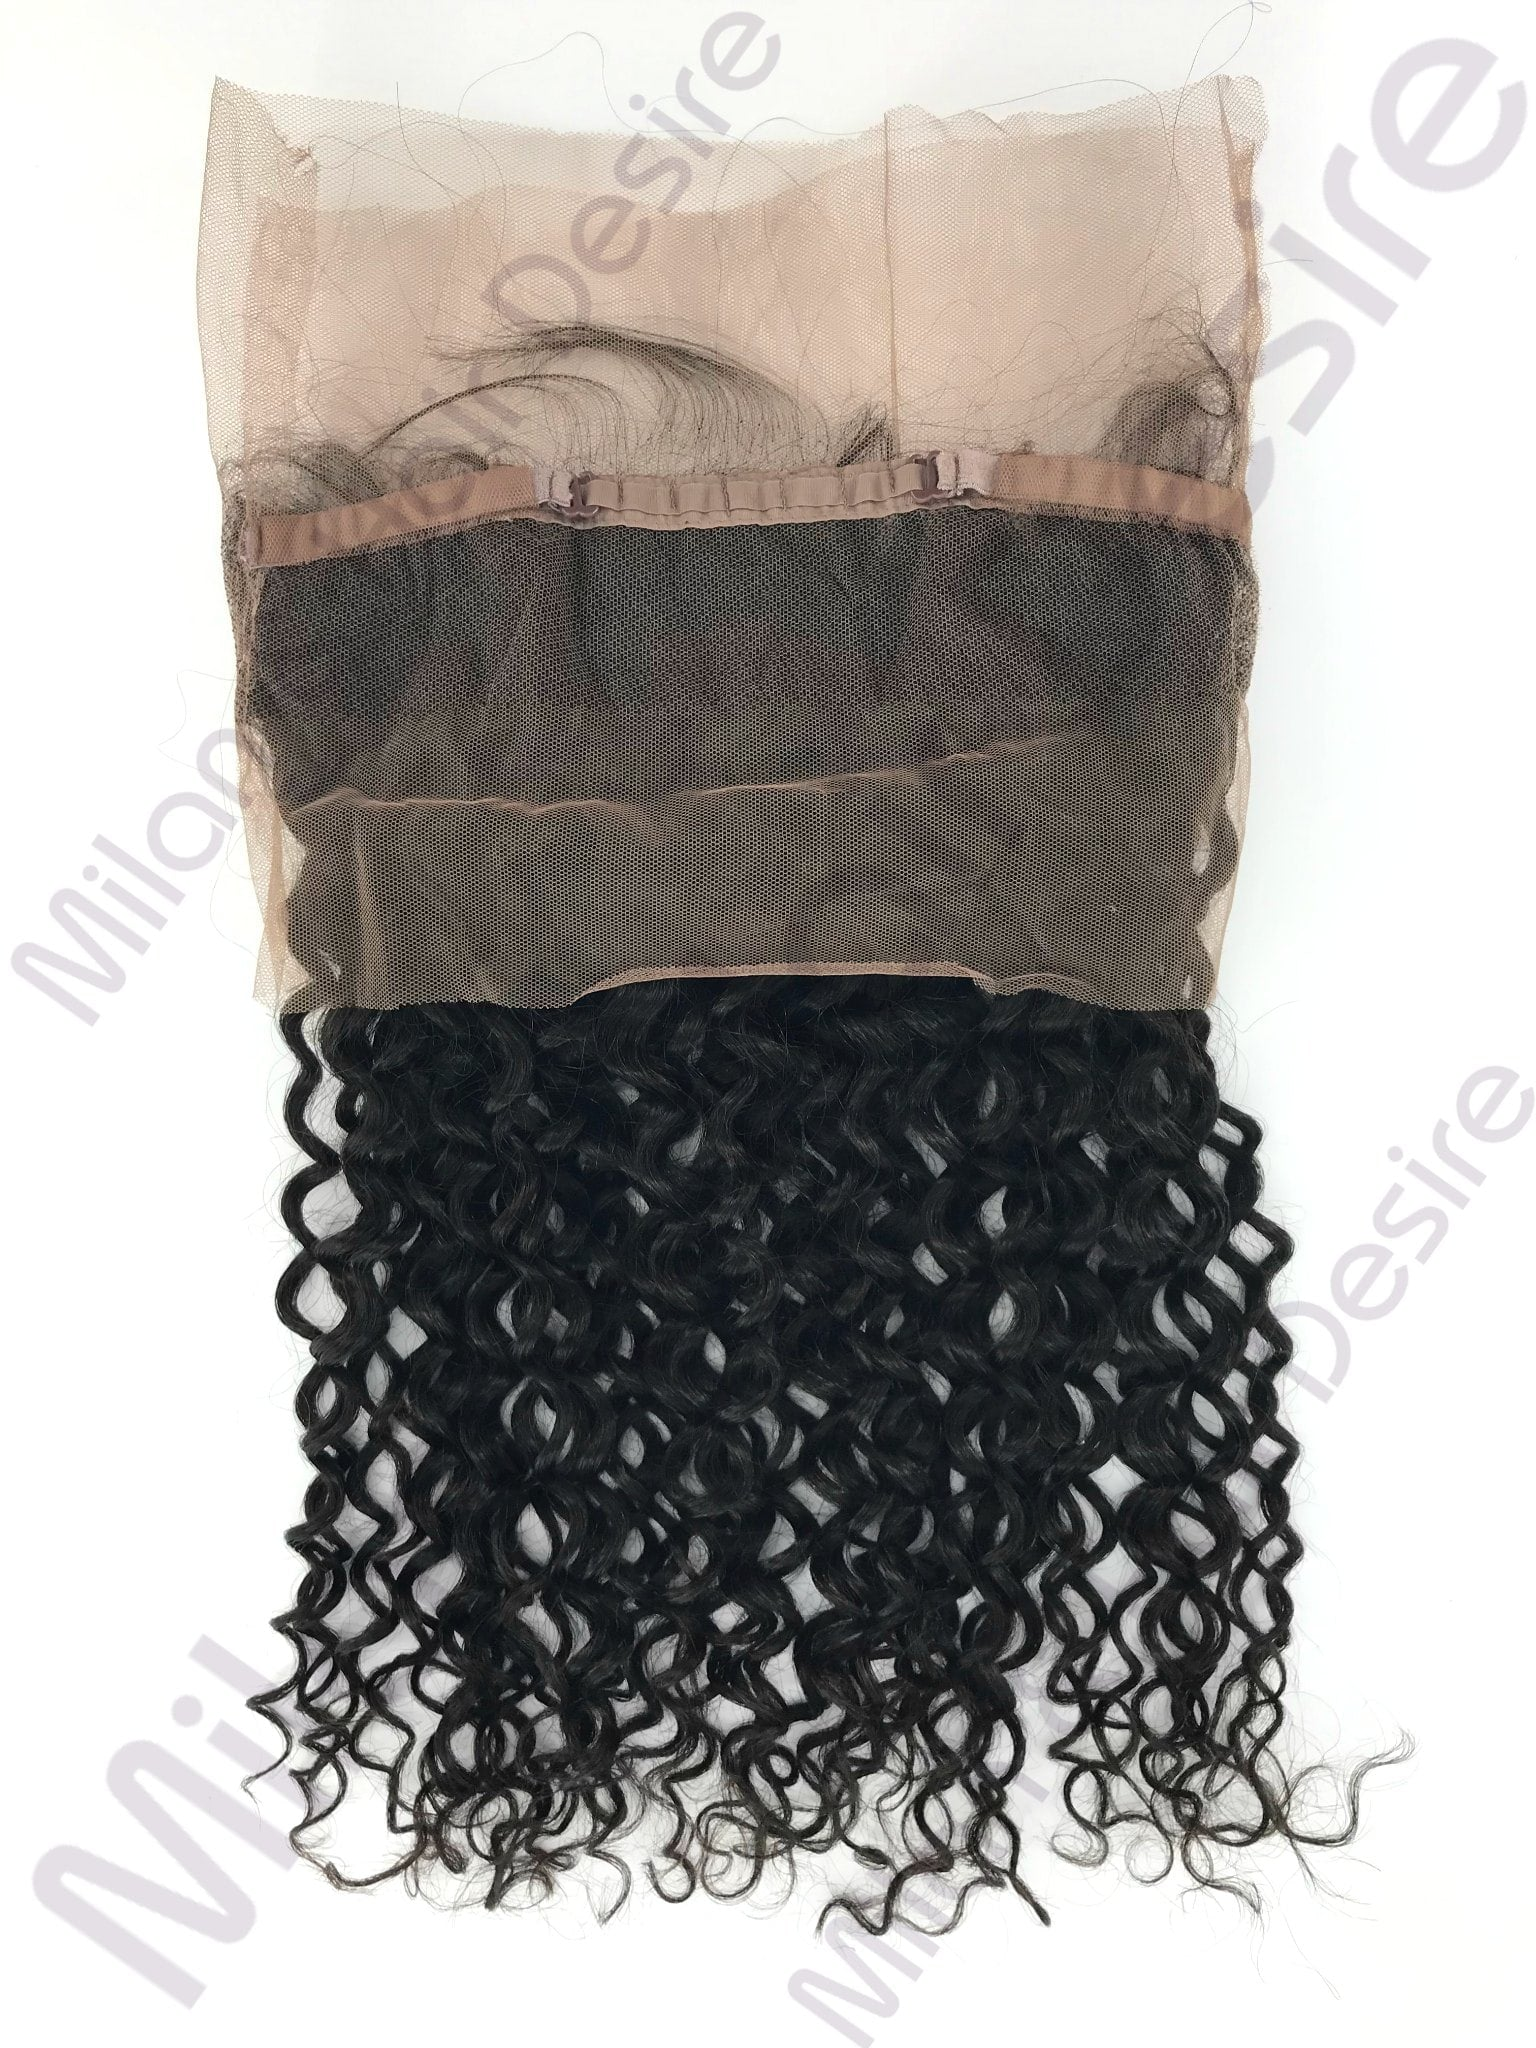 Virgin Peruvian Deep Curl 360 Lace Frontal Packaging